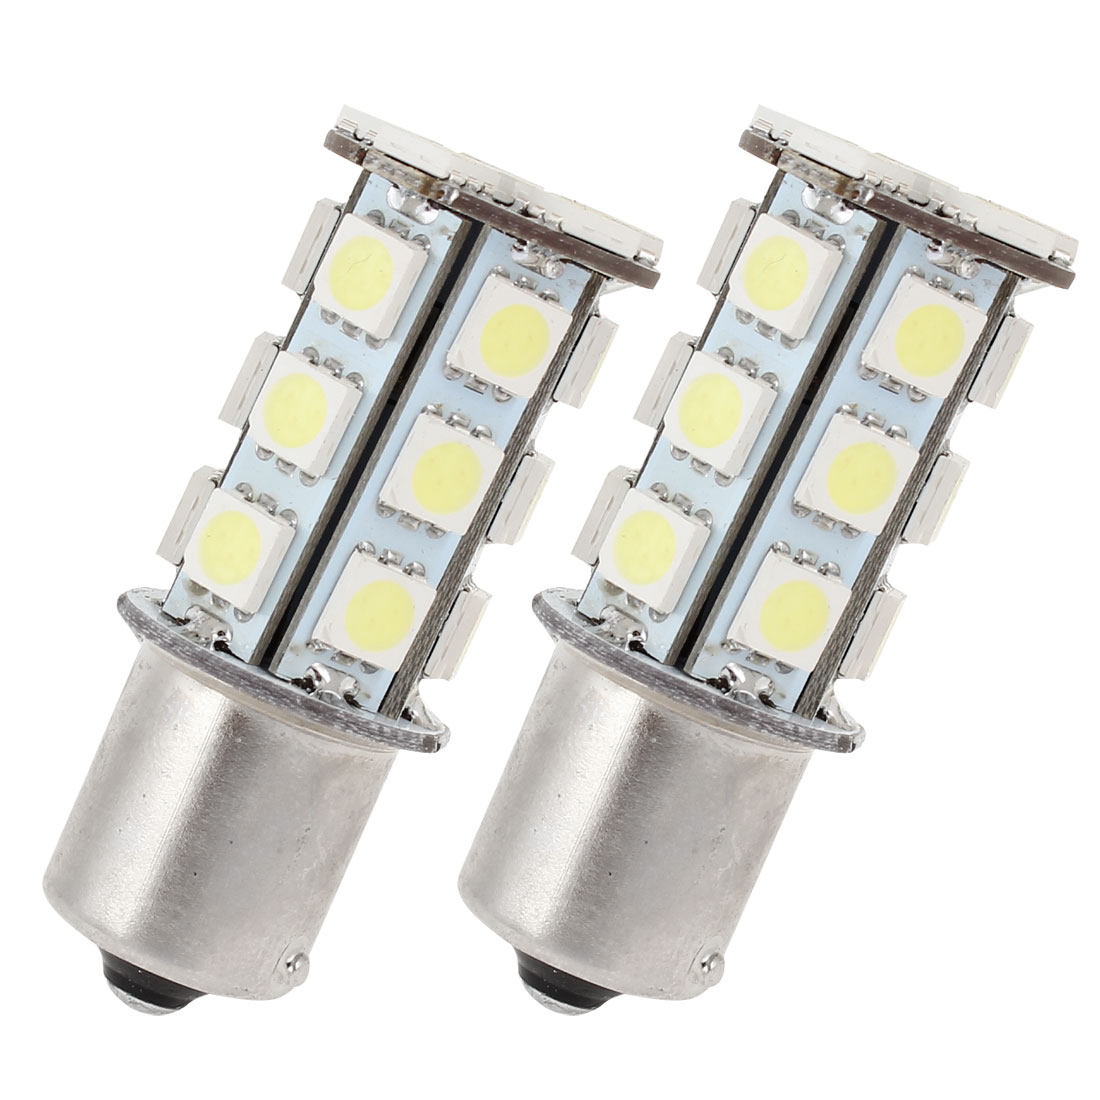 Car 5050 24LED BA15S 1156 Corner Tail Turn Signal Light White 1073 1159 2 Pcs